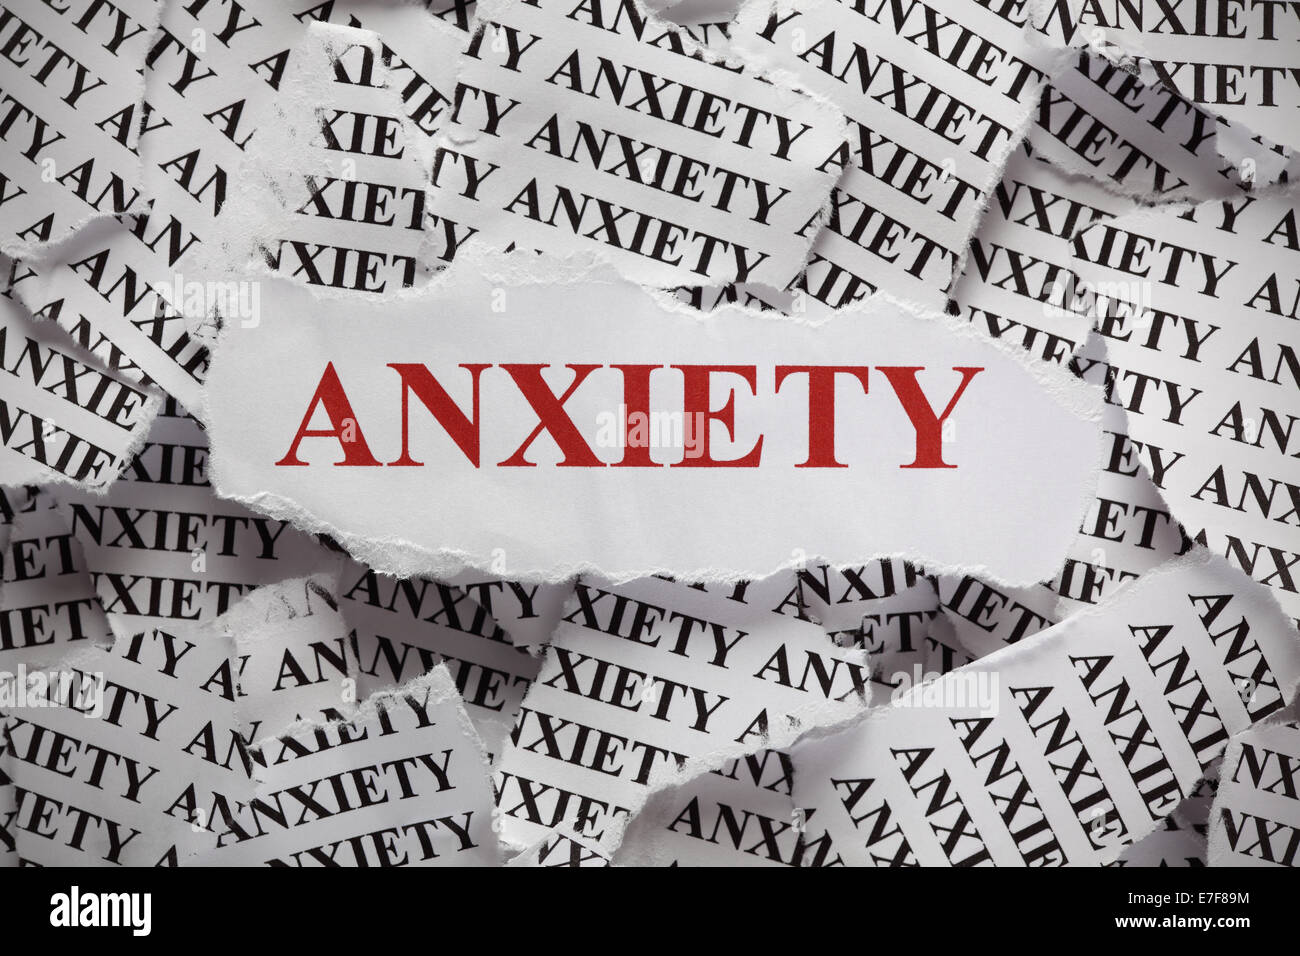 Torn pieces of paper with the word 'Anxiety'. Concept Image. Closeup. - Stock Image